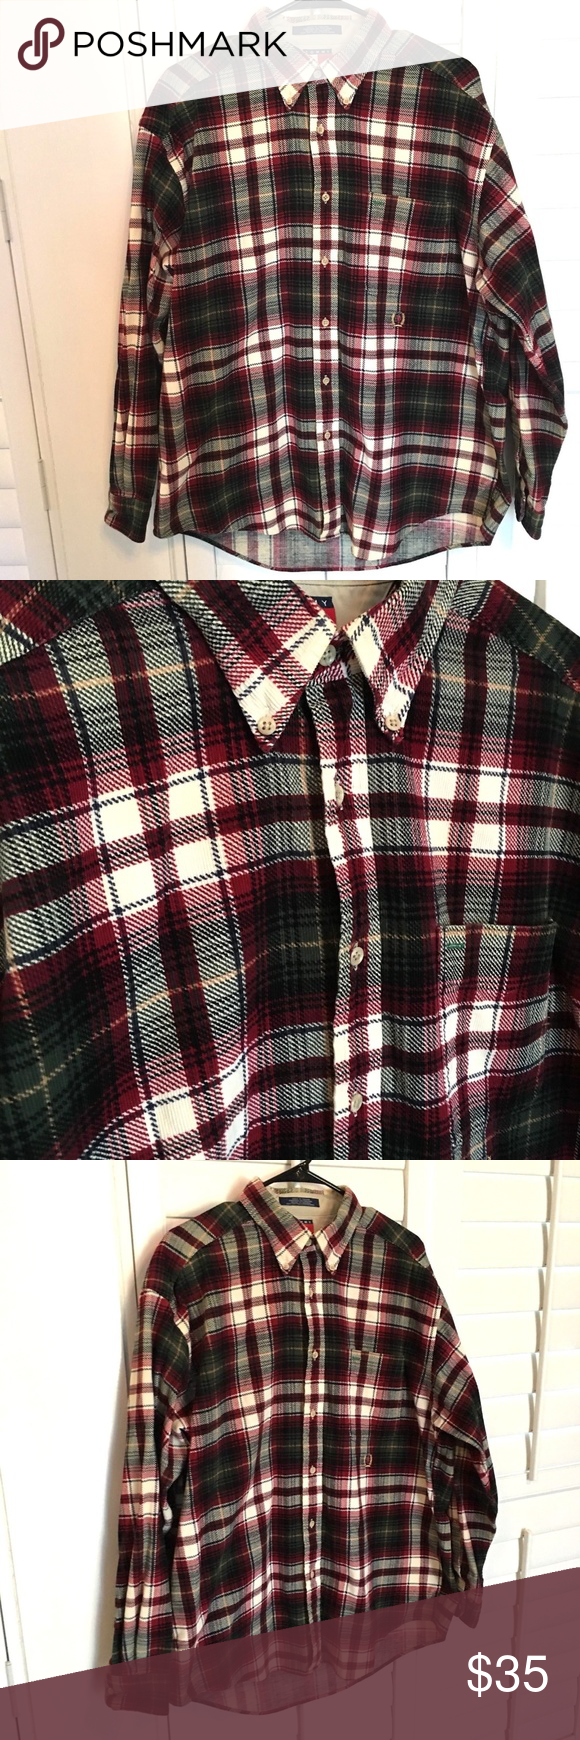 2aaebb55a Size L Approx Measurements: Chest 51 Sleeves 24 Length 34 E213 Tommy  Hilfiger Shirts Casual Button Down Shirts. Vintage Tommy Hilfiger Red Plaid  Corduroy ...